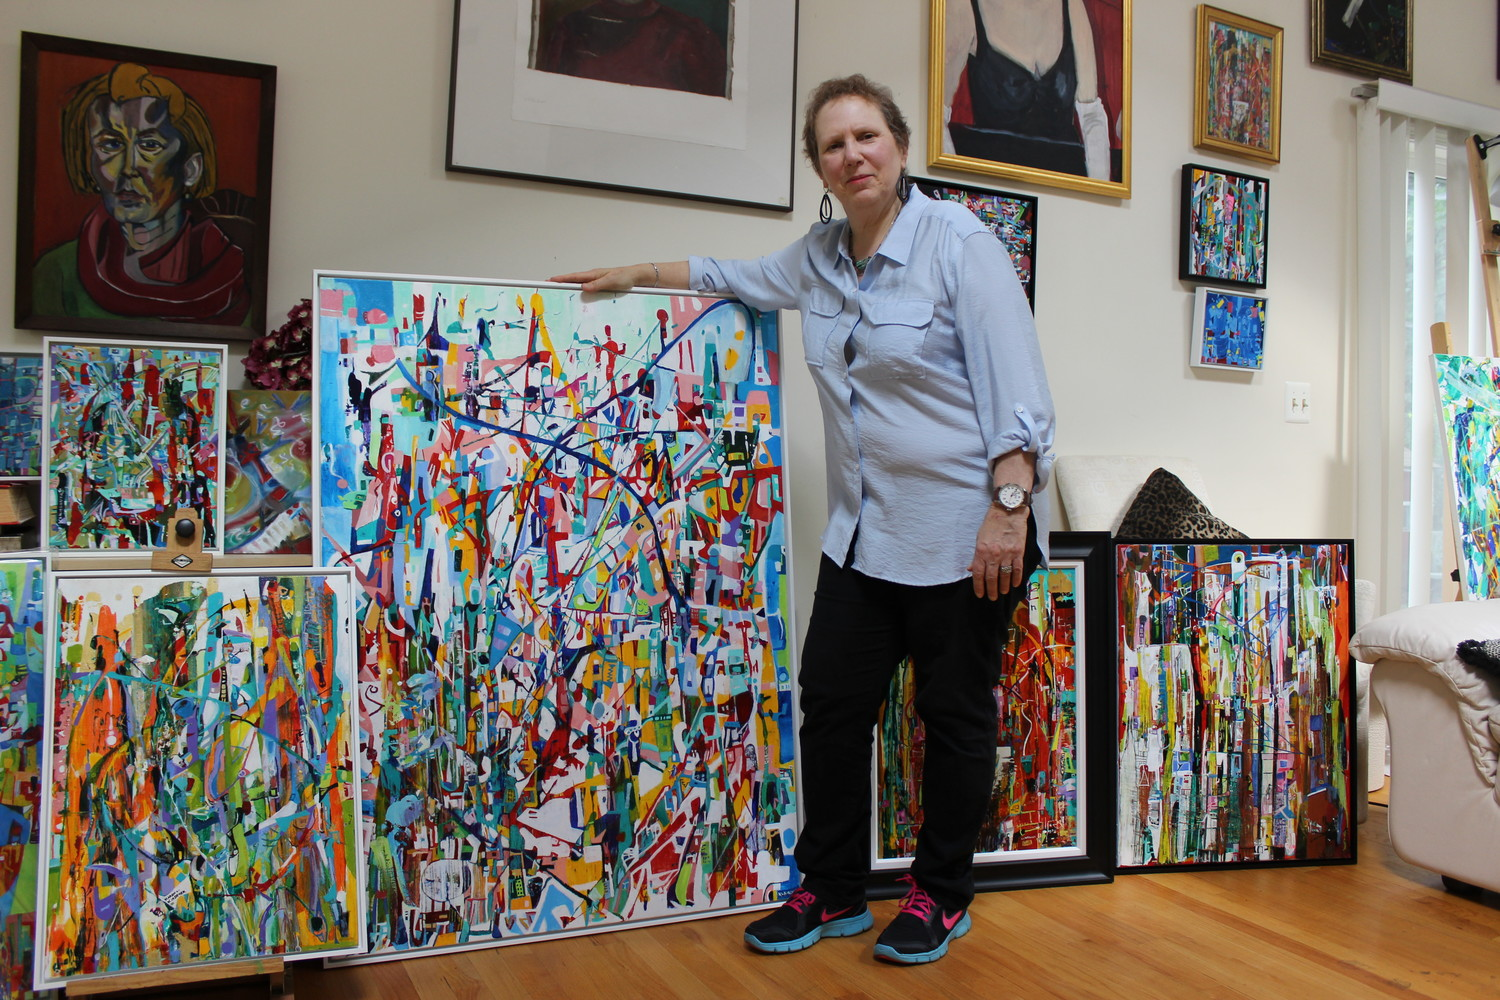 Karen Kirshner is an artist from East Meadow who specializes in abstract surrealism.